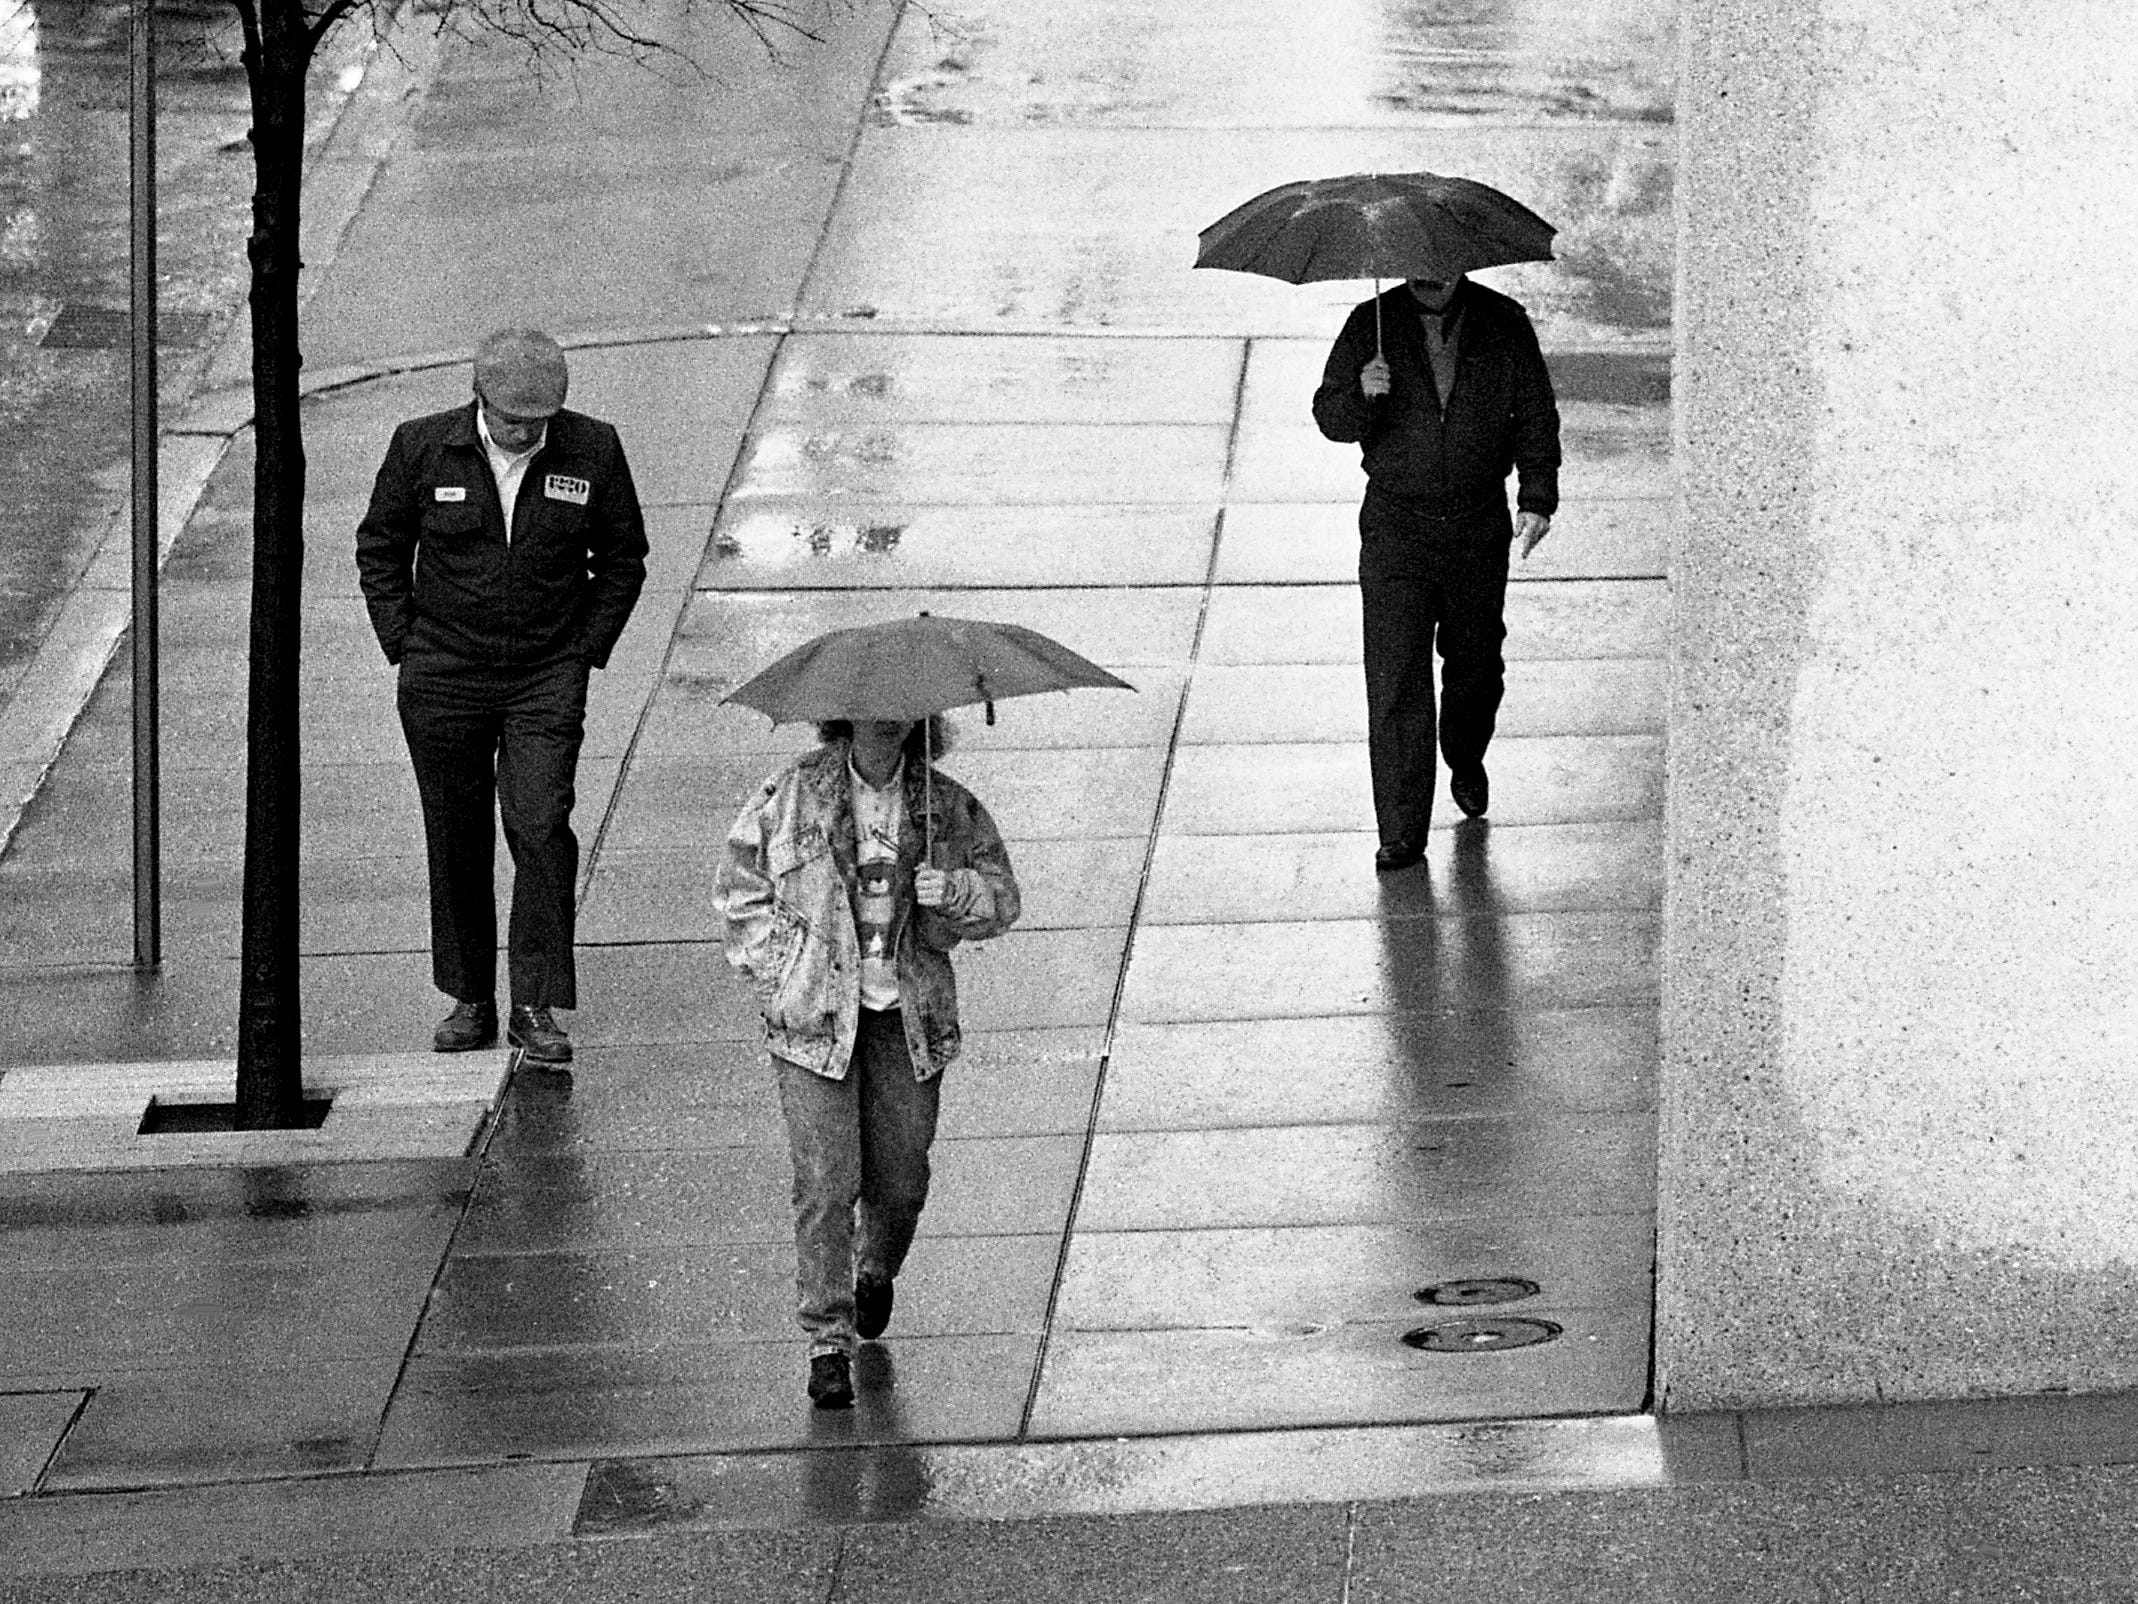 People carry umbrellas in downtown Nashville on Feb. 17, 1989. The rain was expected to turn to snow that night.